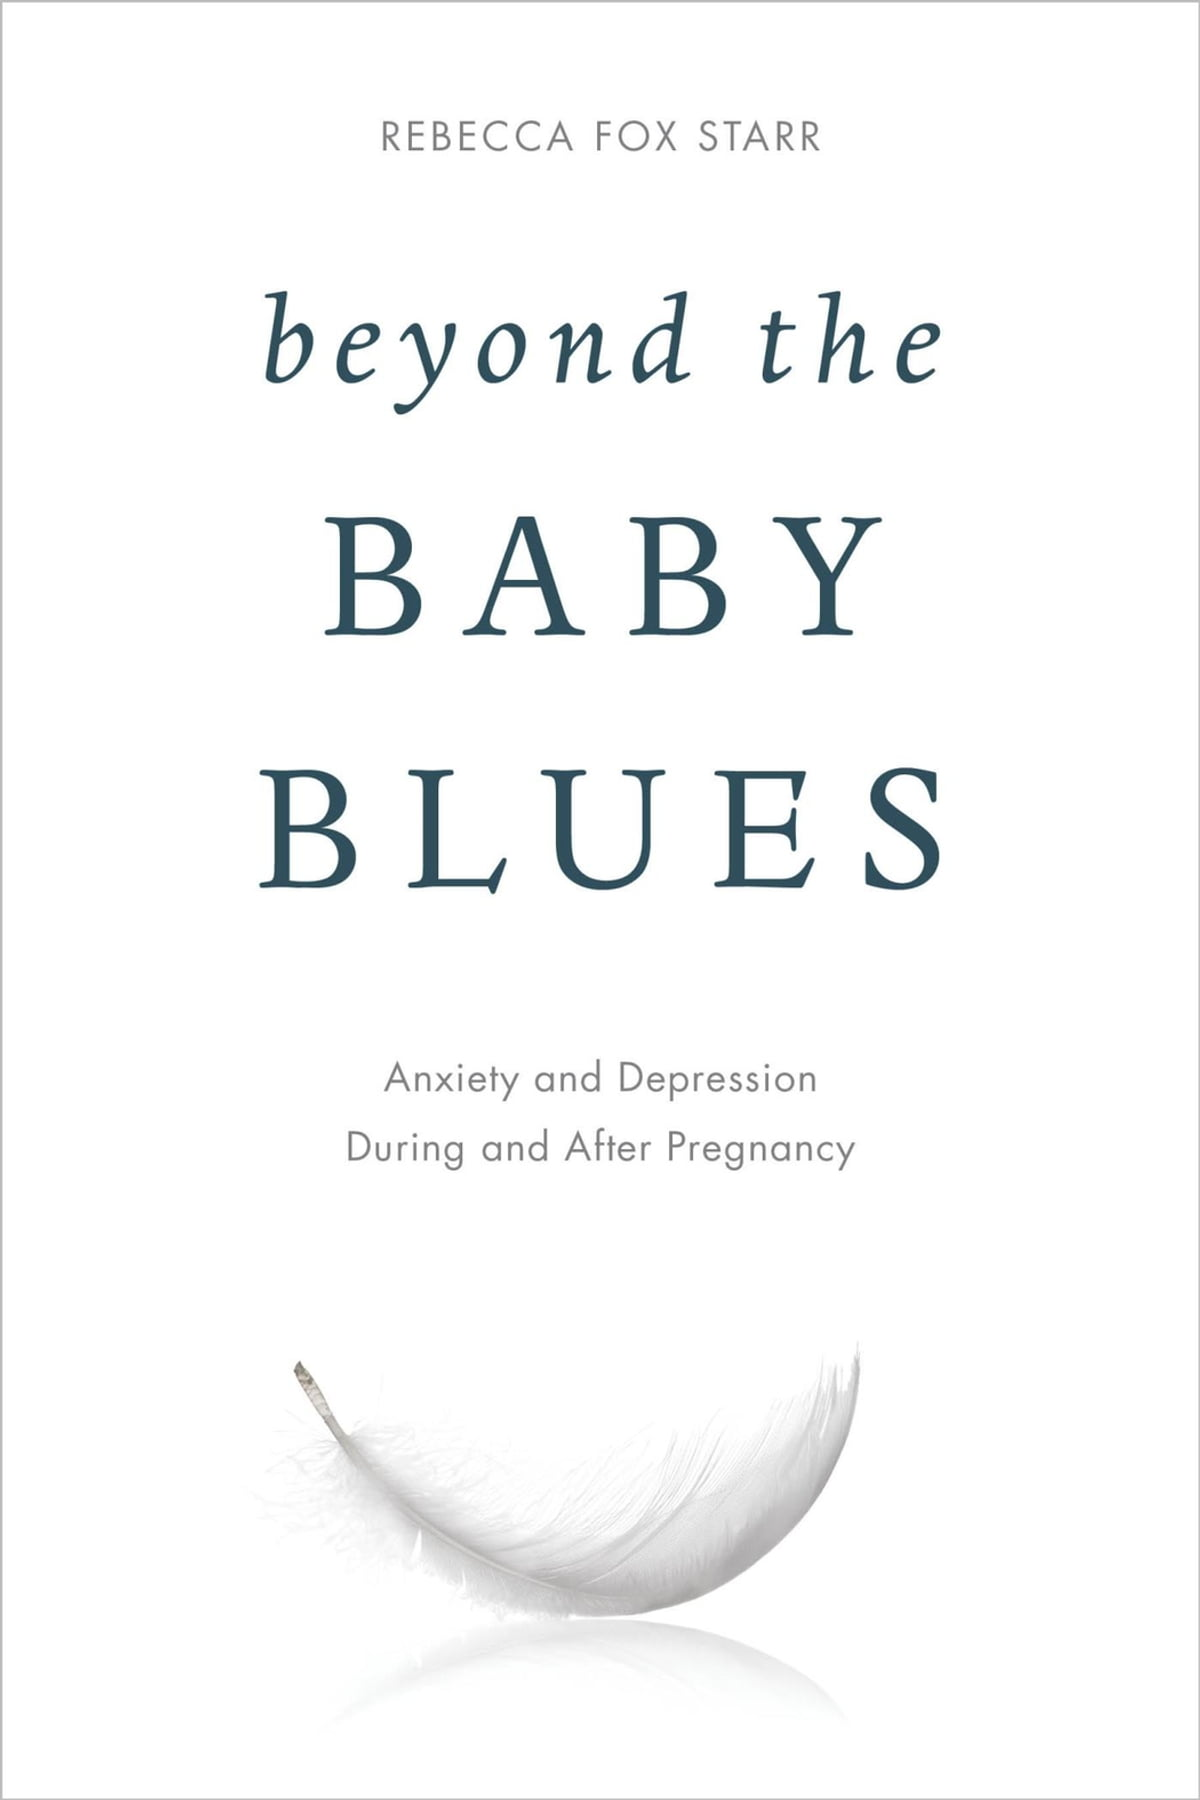 Beyond the Baby Blues eBook by Rebecca Fox Starr